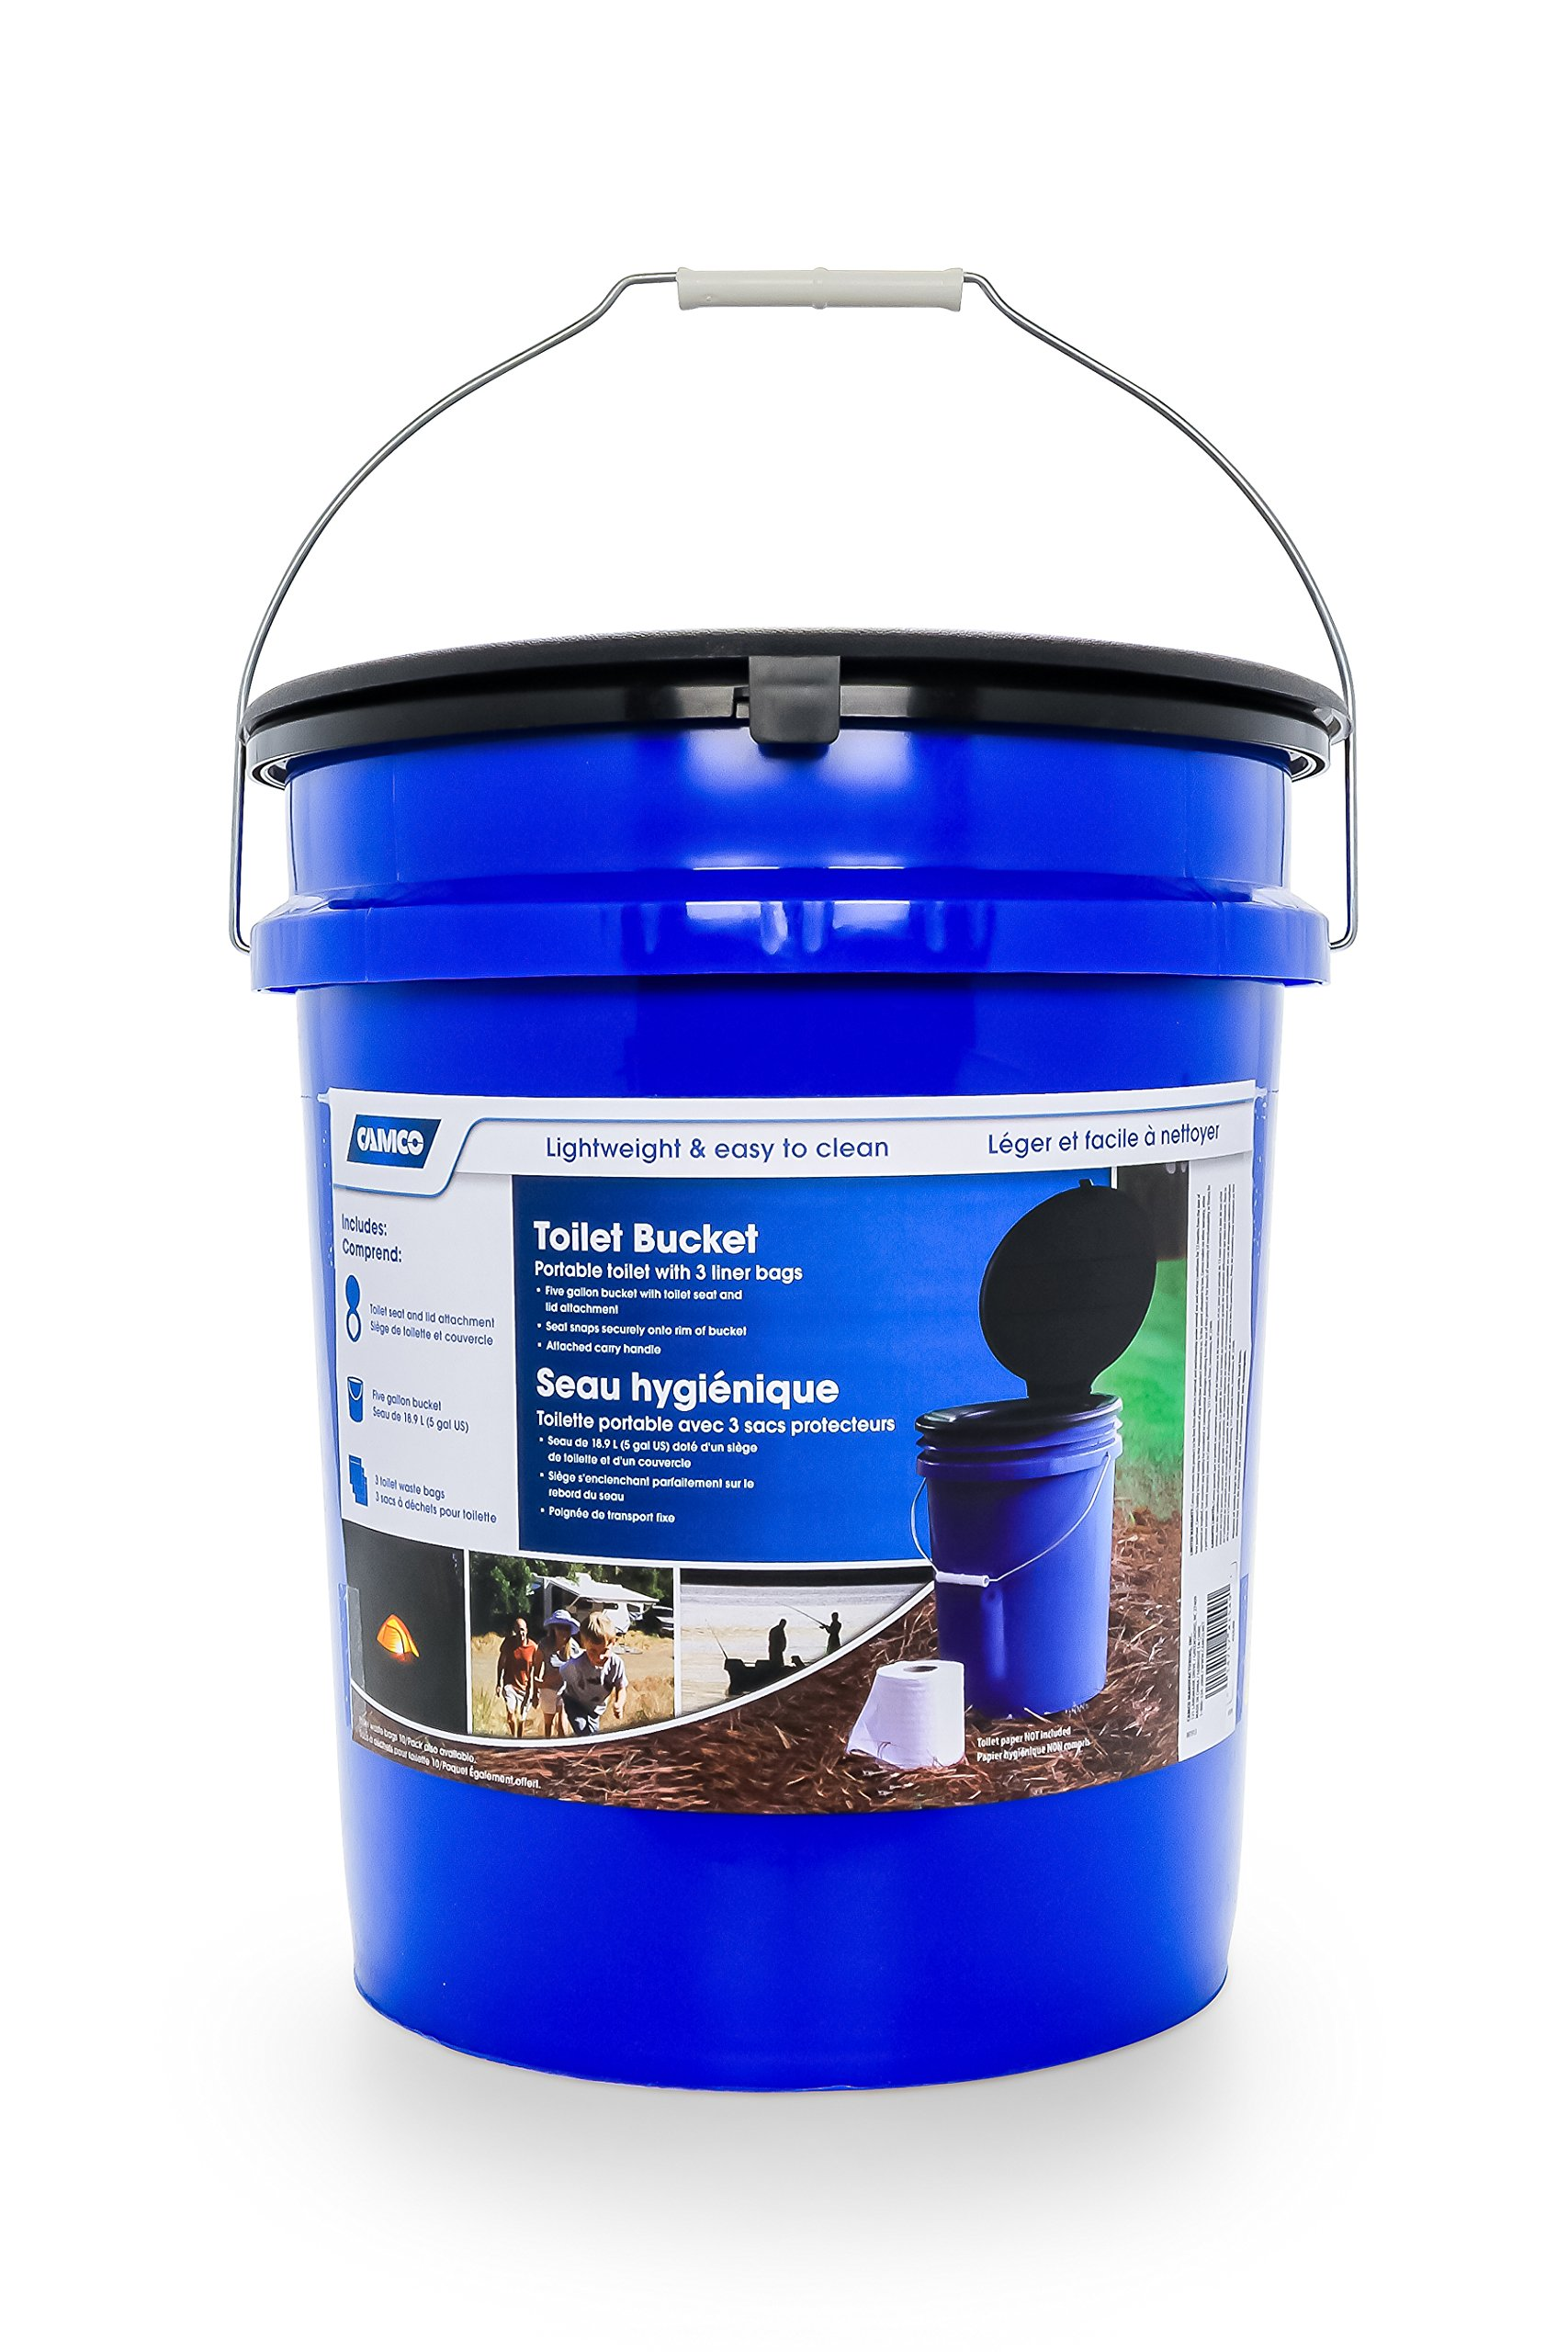 Camco Portable Toilet Bucket with Seat and Lid Attachment - Holds 5 Gallons, Lightweight and Easy to Clean, Great for Camping , Hiking and Hunting and More (41549)